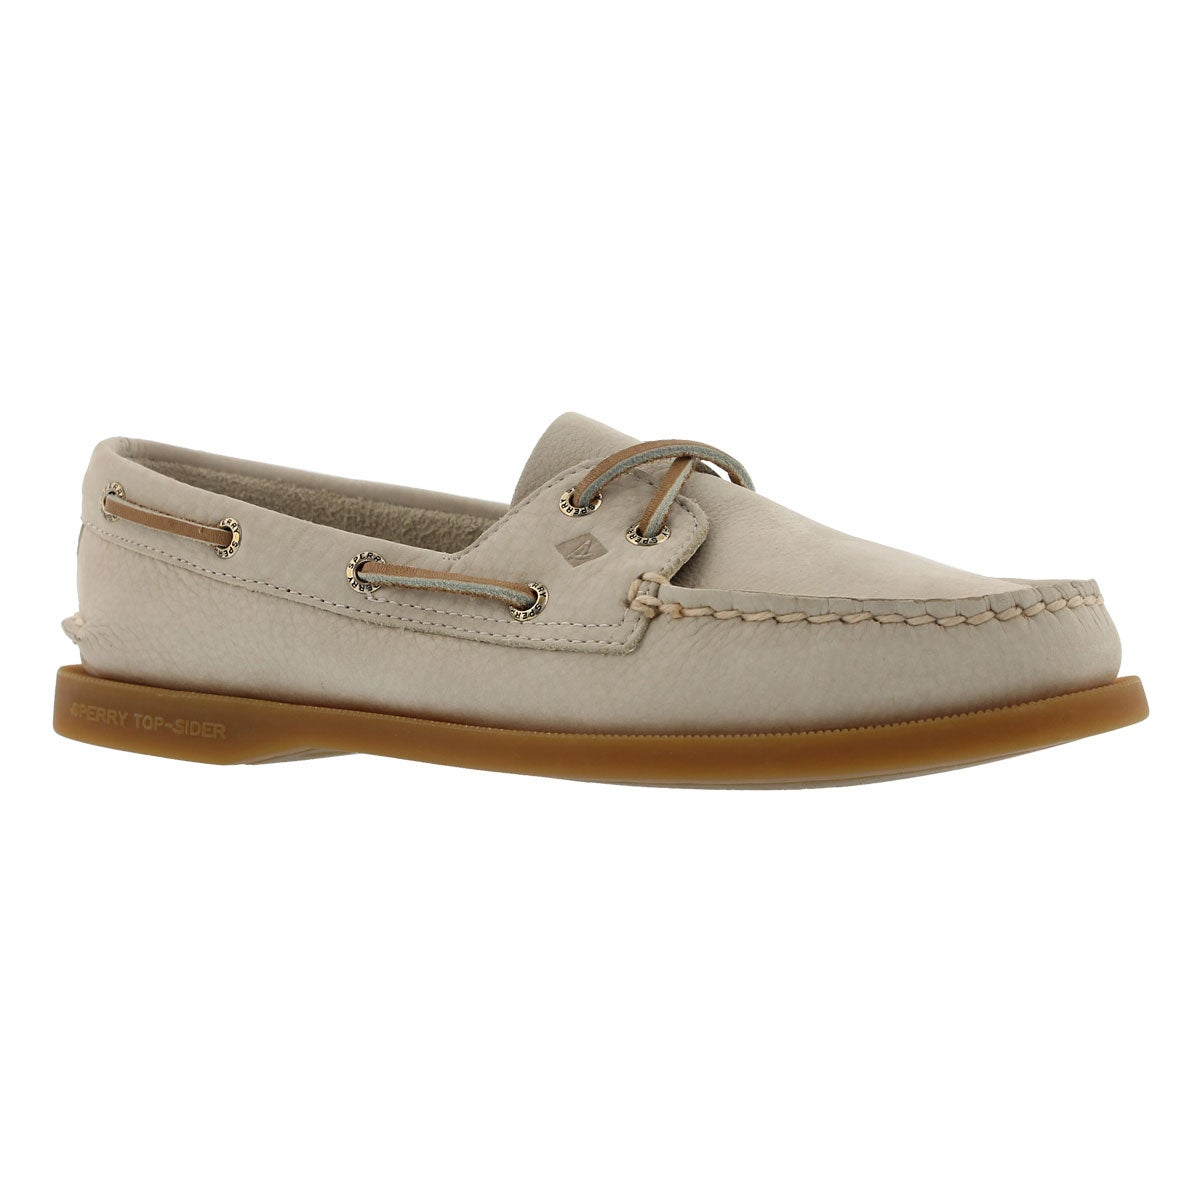 Women's AUTHENTIC ORIGINAL 2-eye sand boat shoes